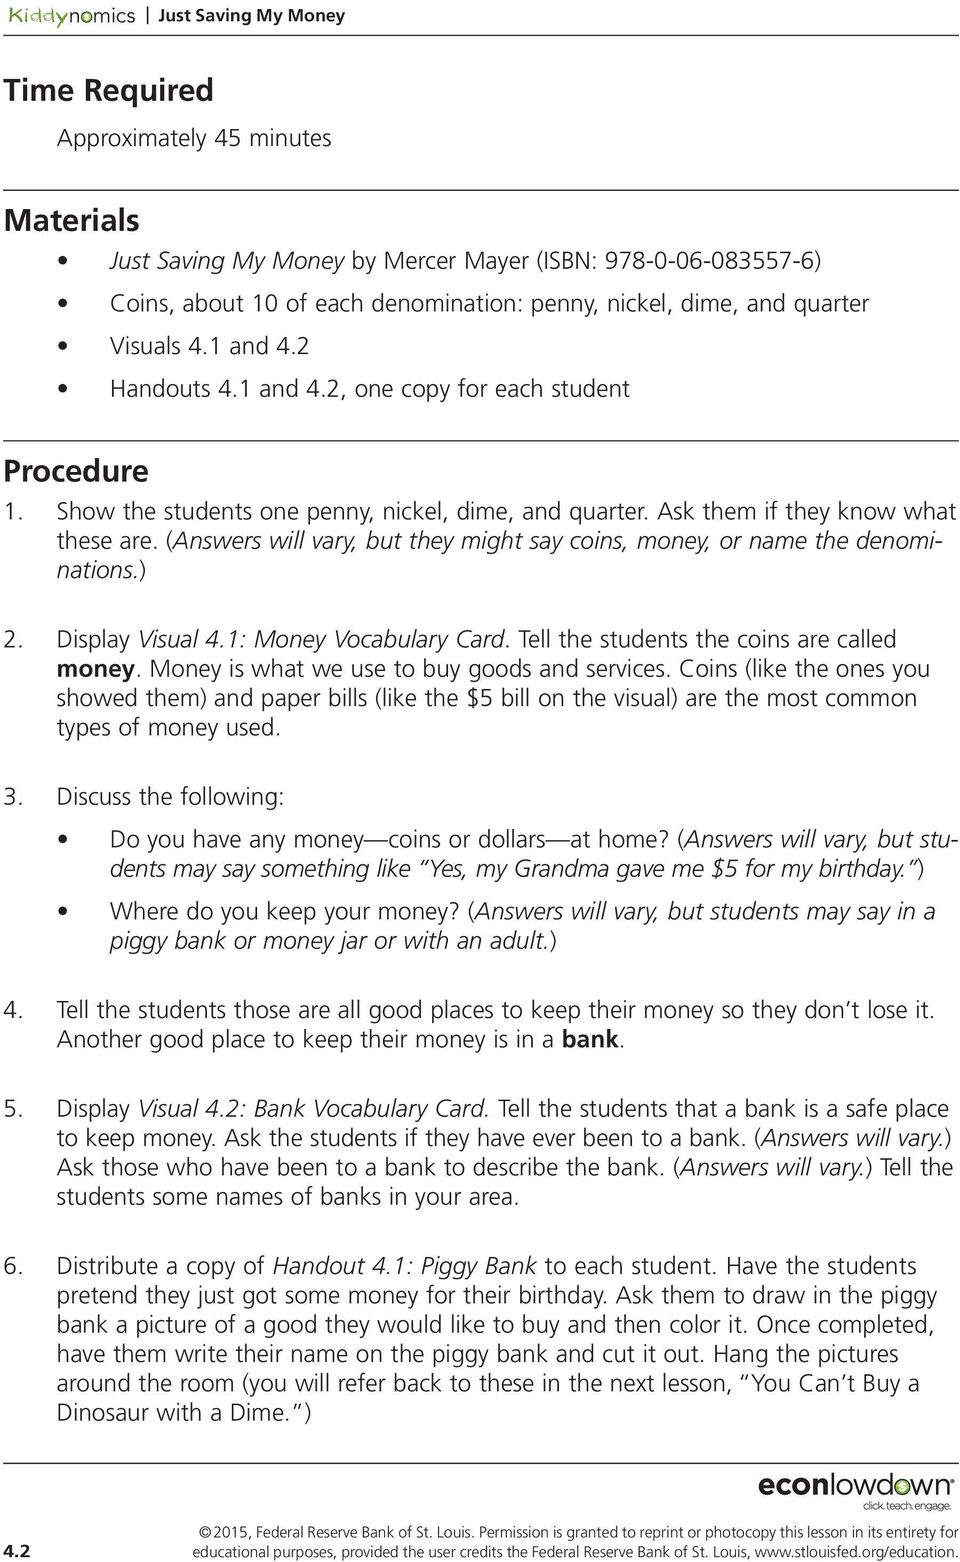 (Answers will vary, but they might say coins, money, or name the denominations.) 2. Display Visual 4.1: Money Vocabulary Card. Tell the students the coins are called money.